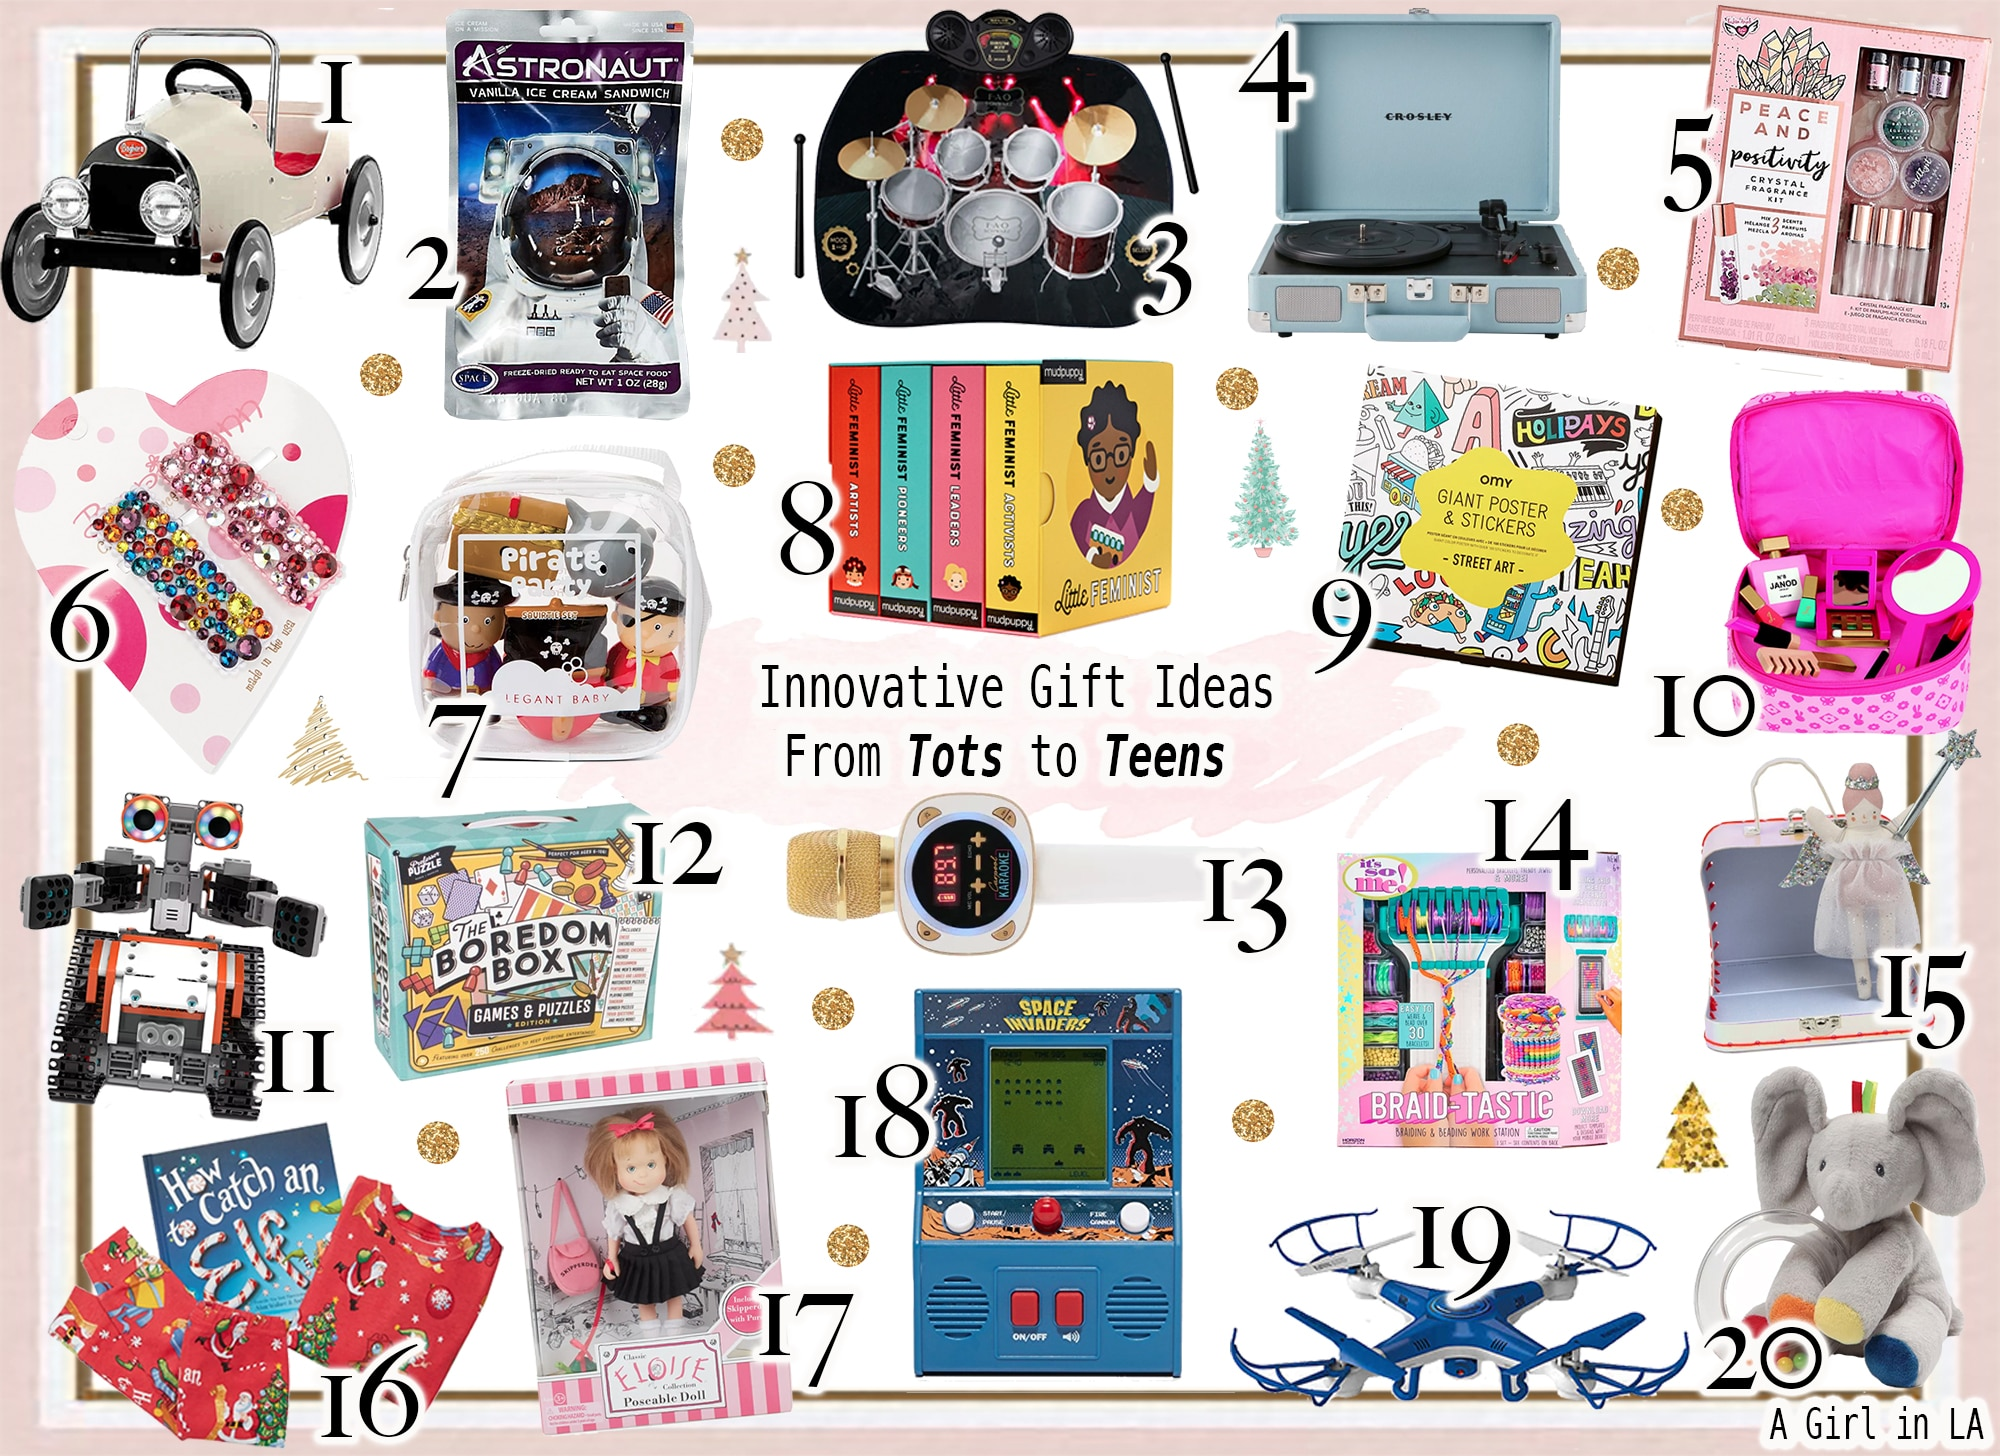 Innovative Gifts Ideas For Tots to Teens